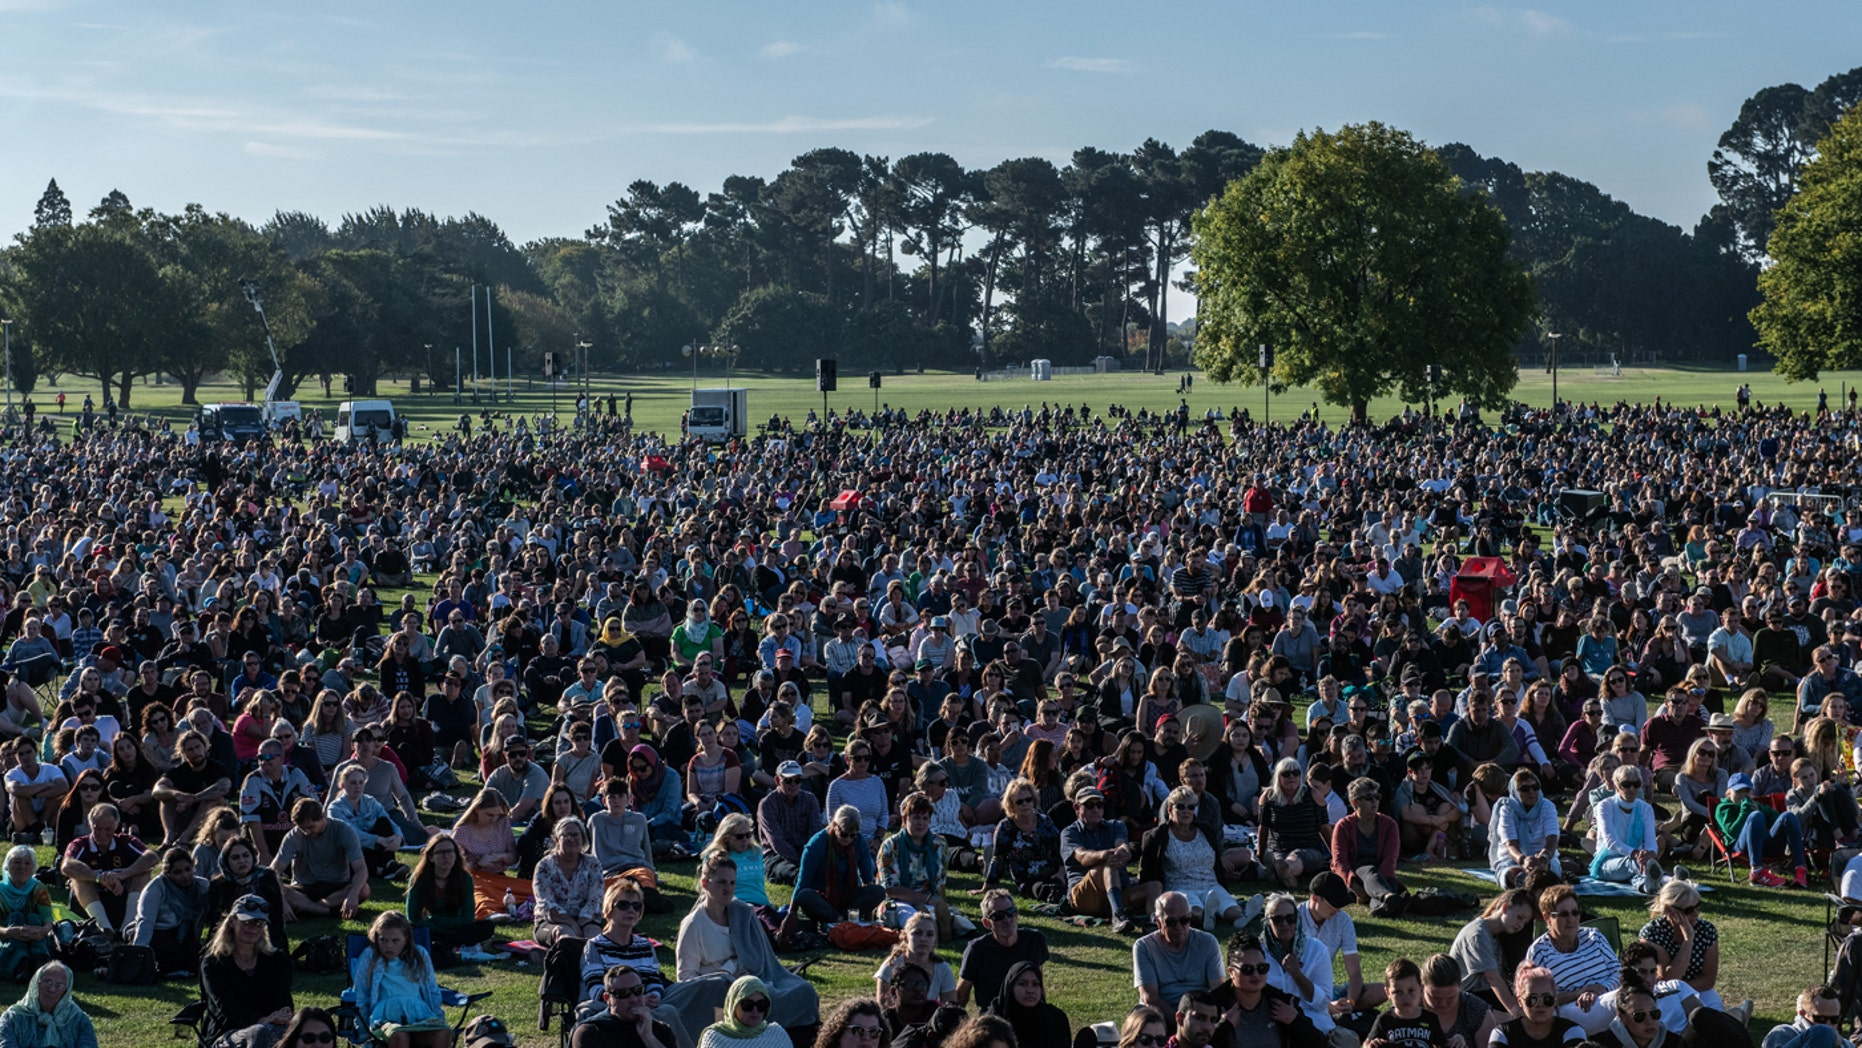 People take part in a vigil to remember the victims of the Christchurch mosque attacks, on March 24, 2019, in Christchurch, New Zealand.